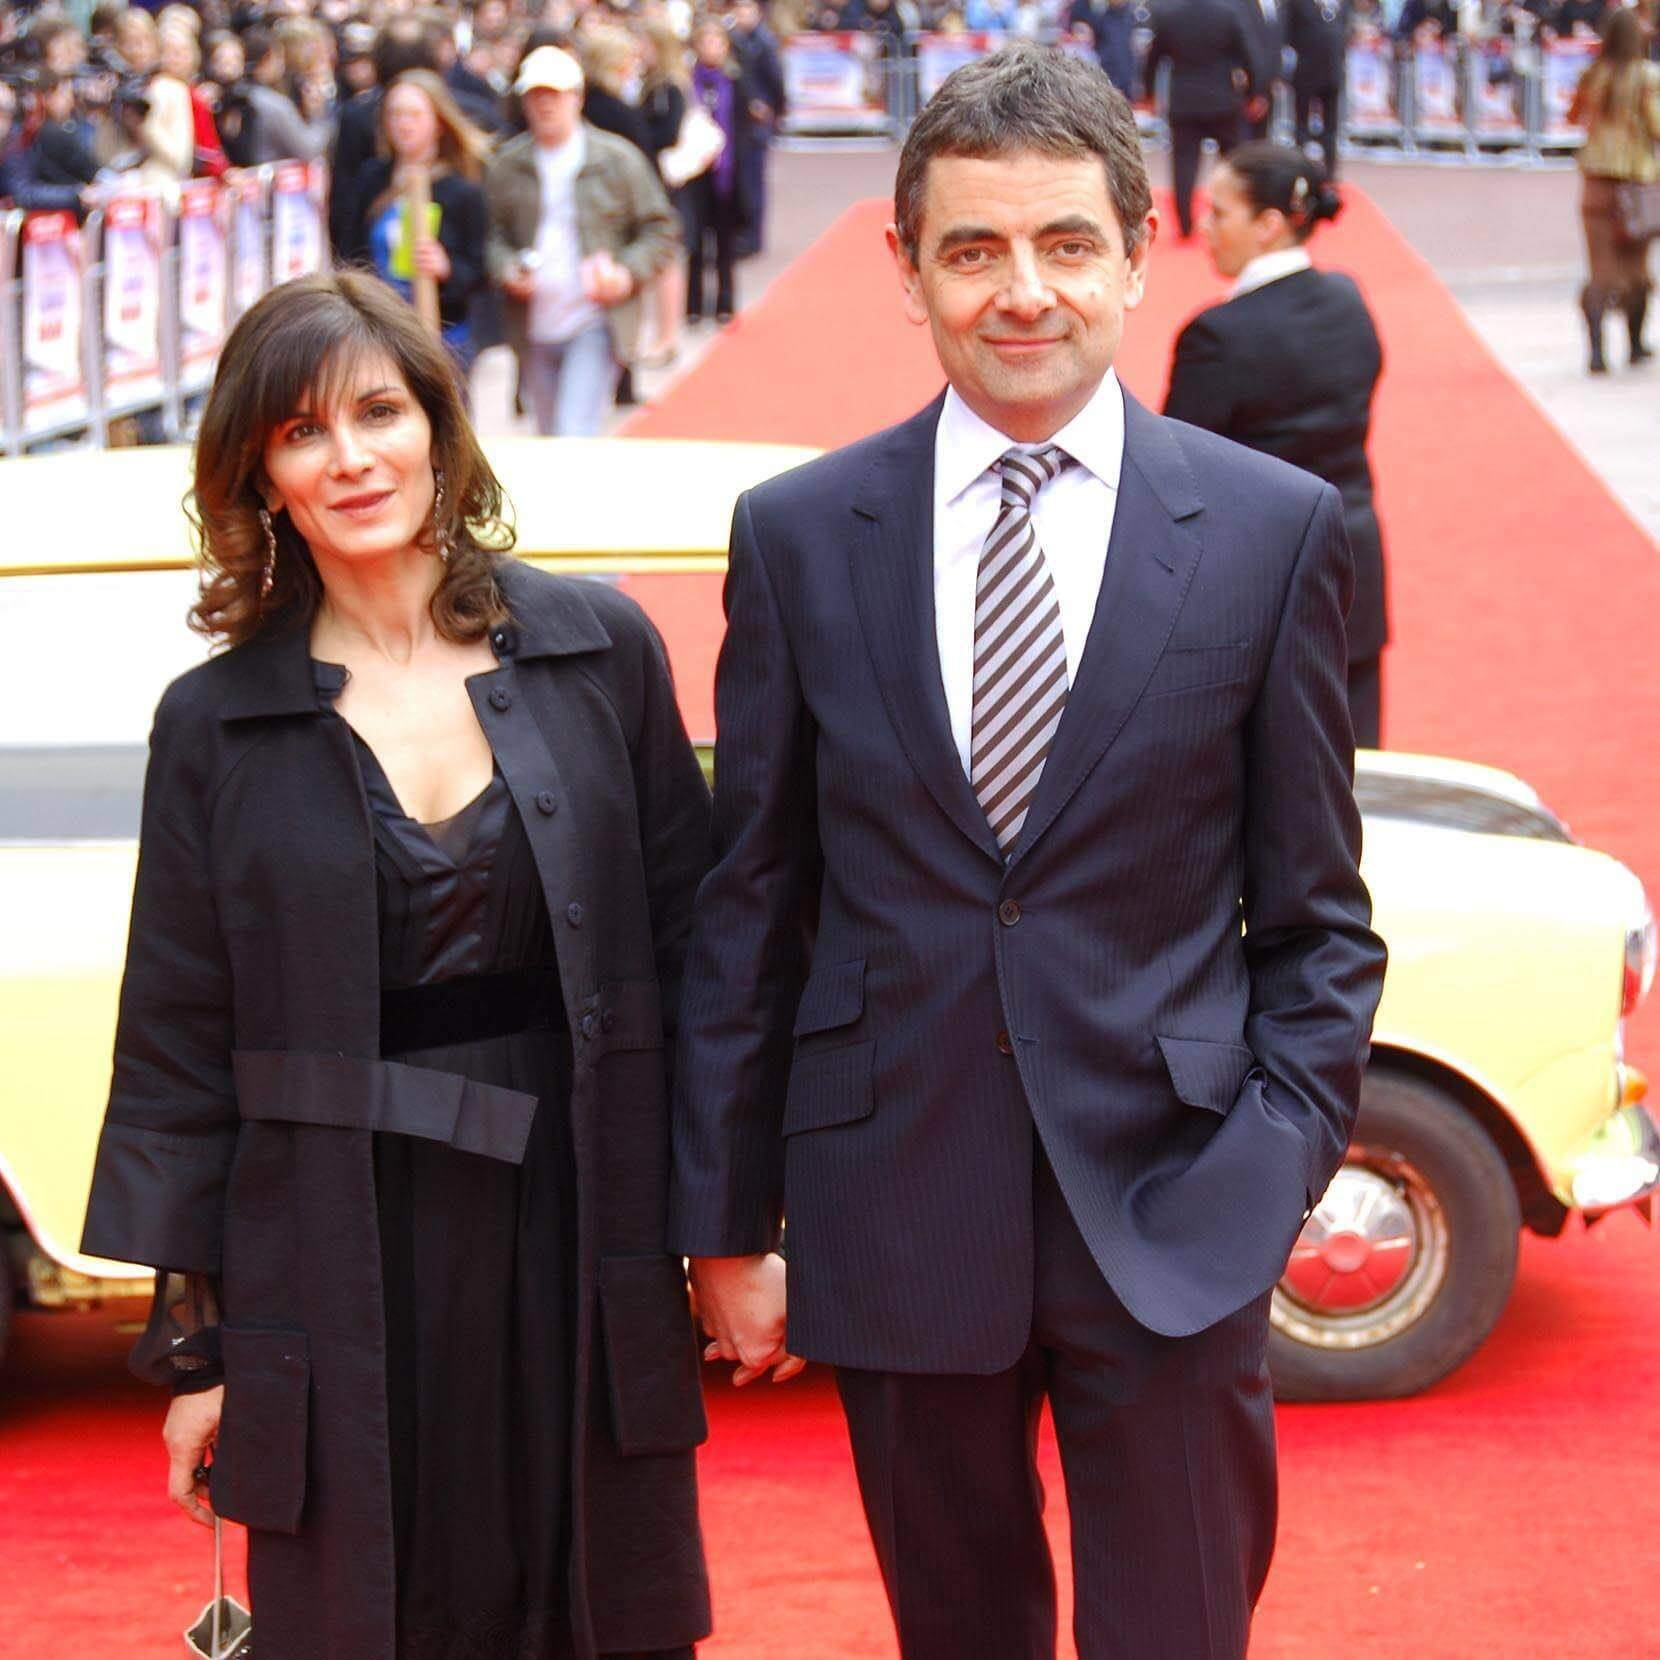 Mr Bean with Sunetra